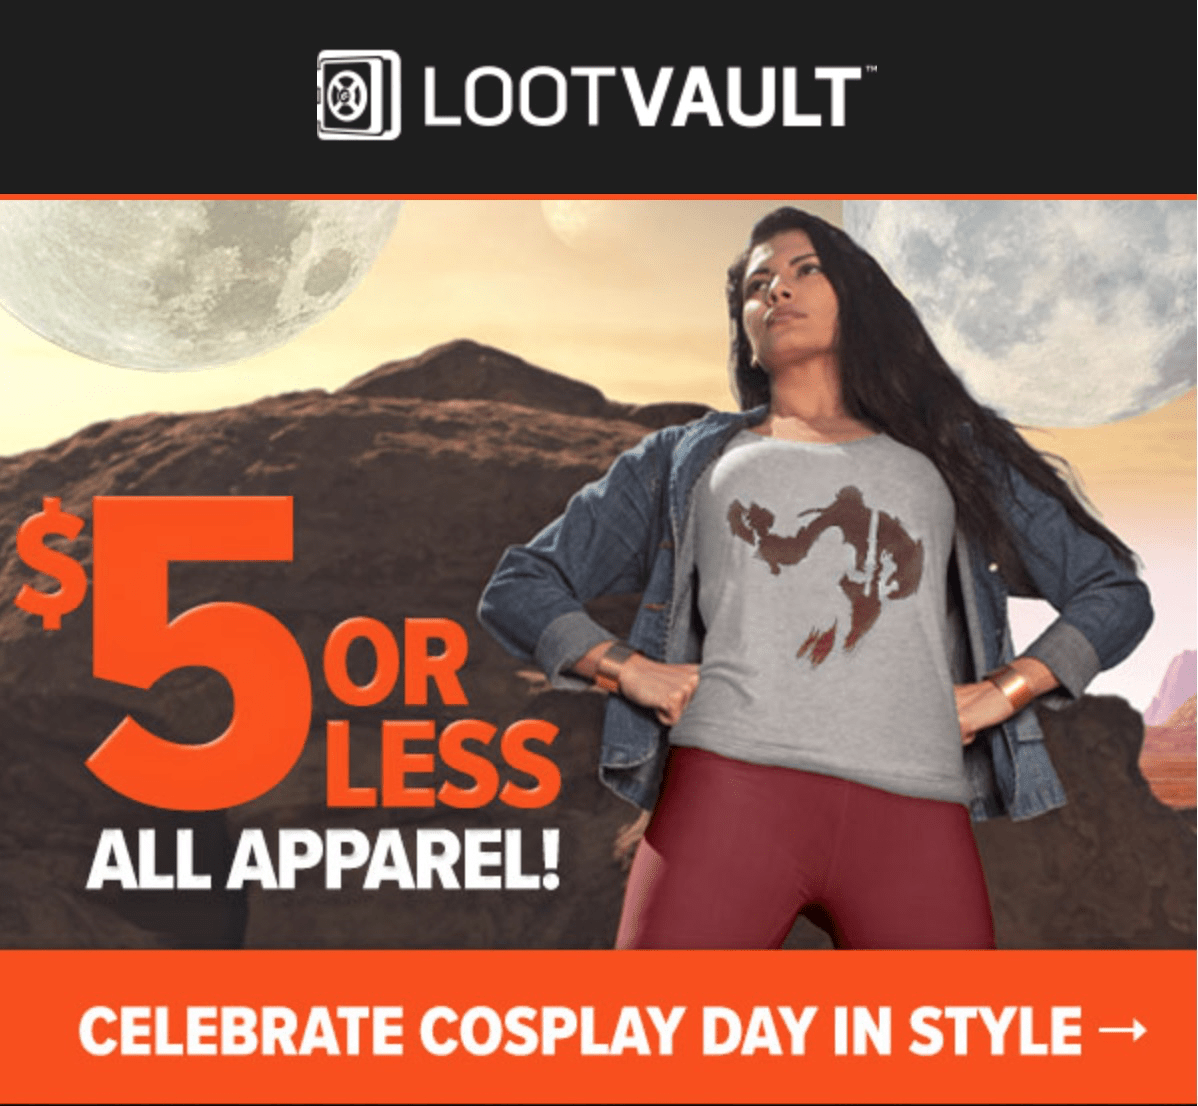 Loot Vault Cosplay Day Flash Sale: $5 or less ALL Apparel!